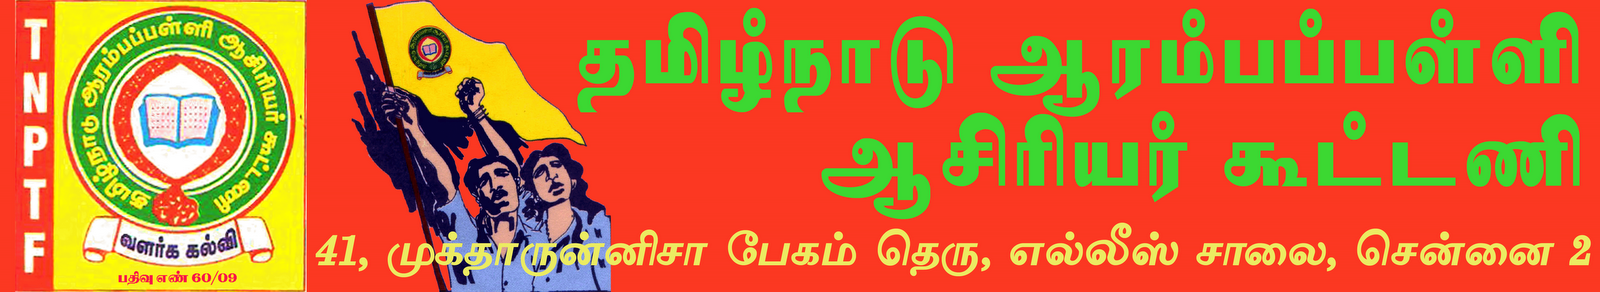 TNPTF TAMILNADU PRIMARY SCHOOL TEACHERS FEDERATION